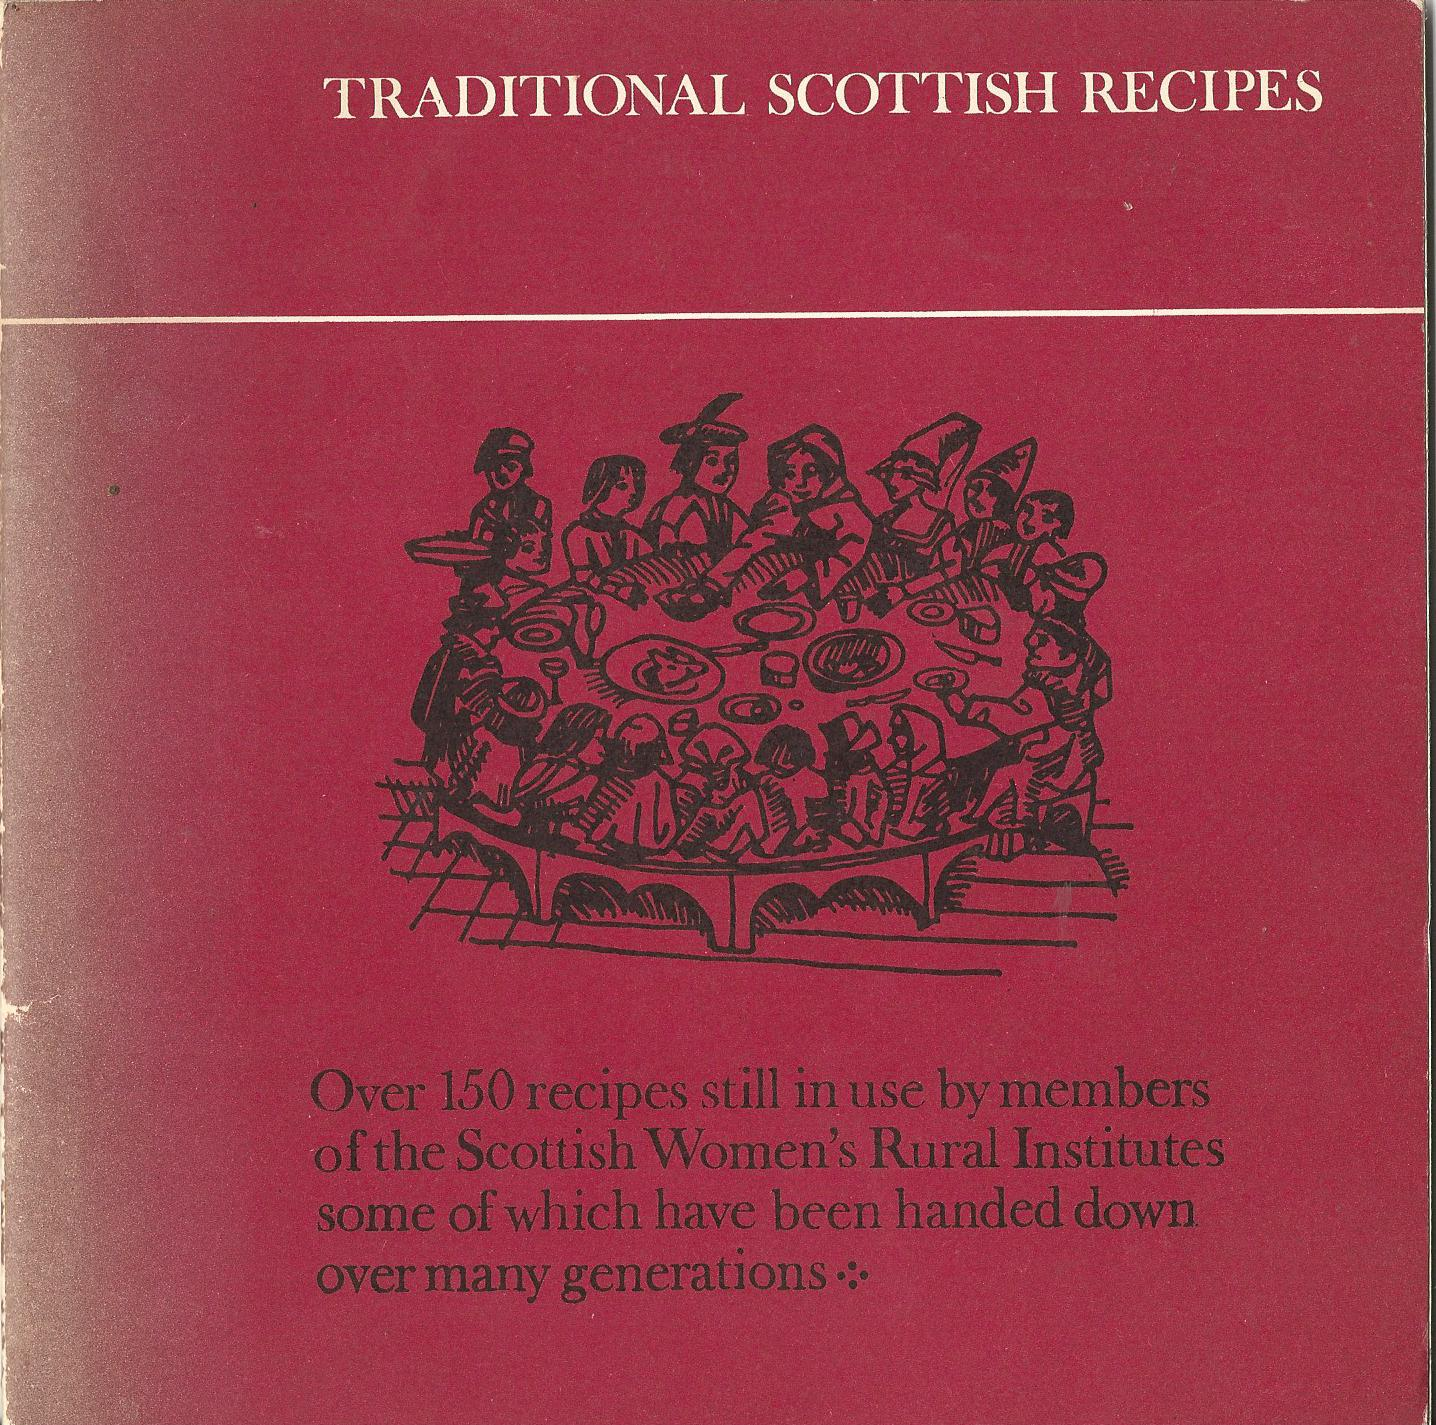 Image for Traditional Scottish Recipes: Over 150 recipes still used by members of the Scottish Women's Rural Institutes, some of which have been handed down over generations.